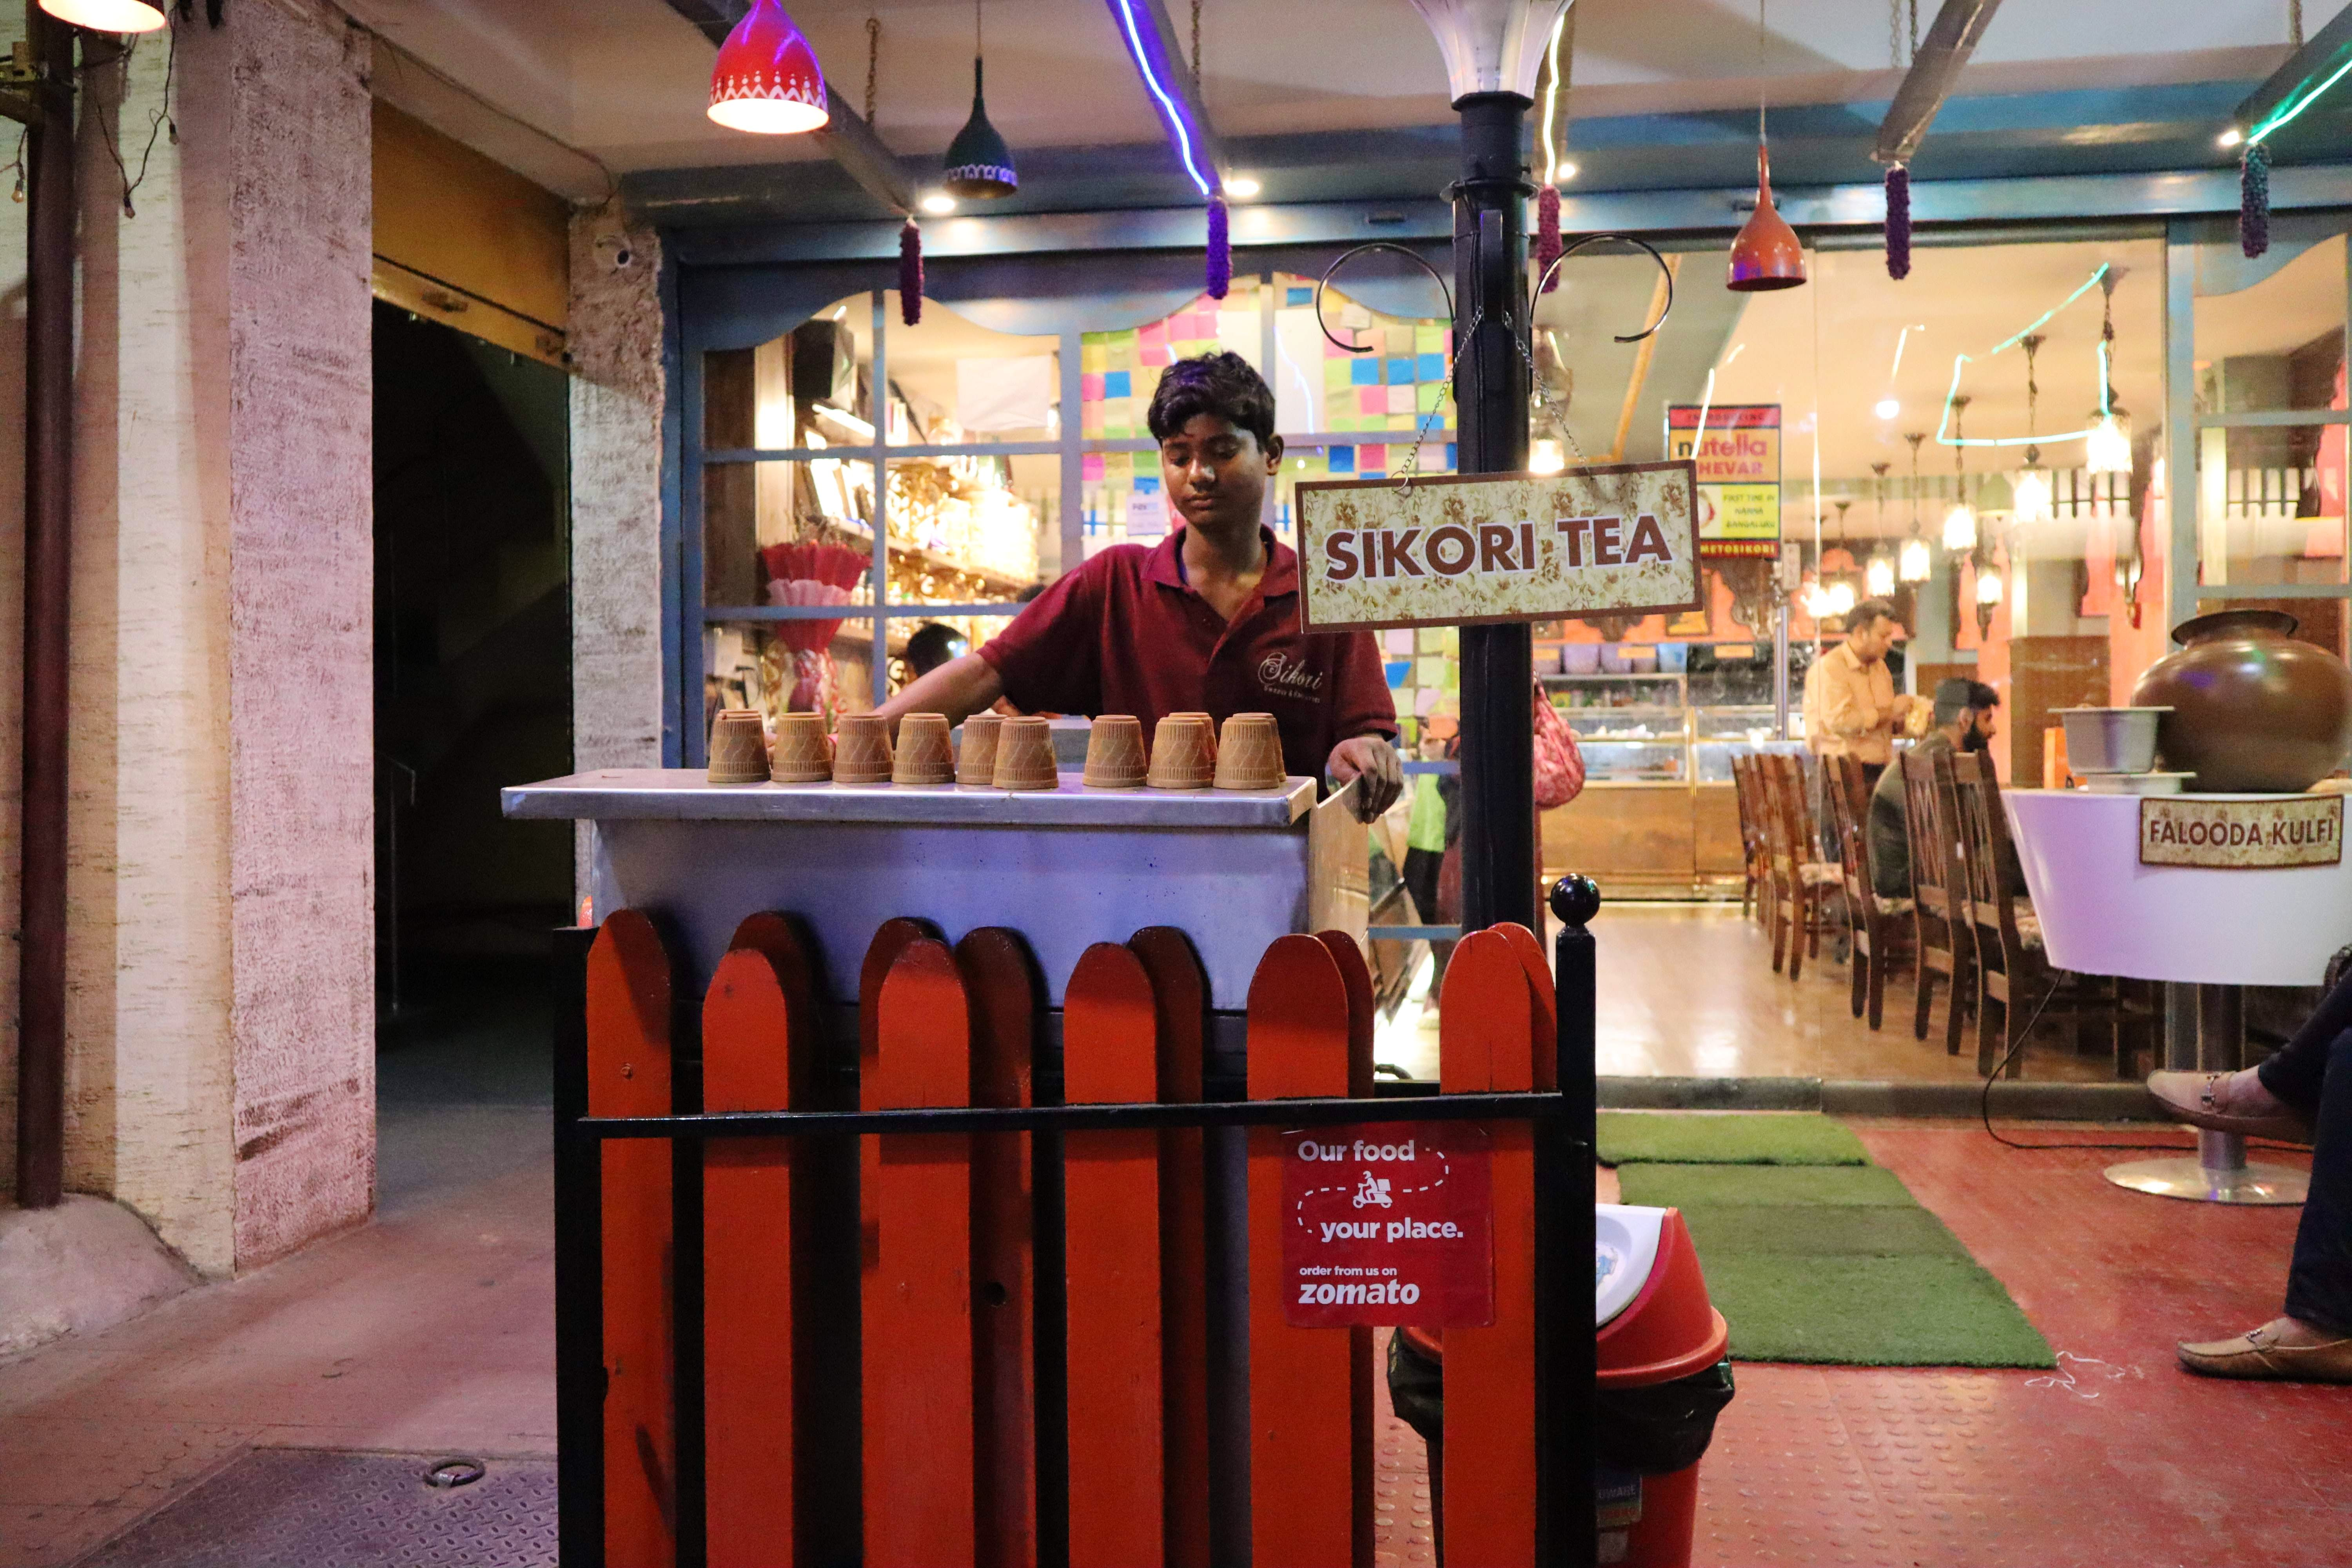 Sikori Tea, Nutella Ghevar And So Much More Only At This Sweet Shop